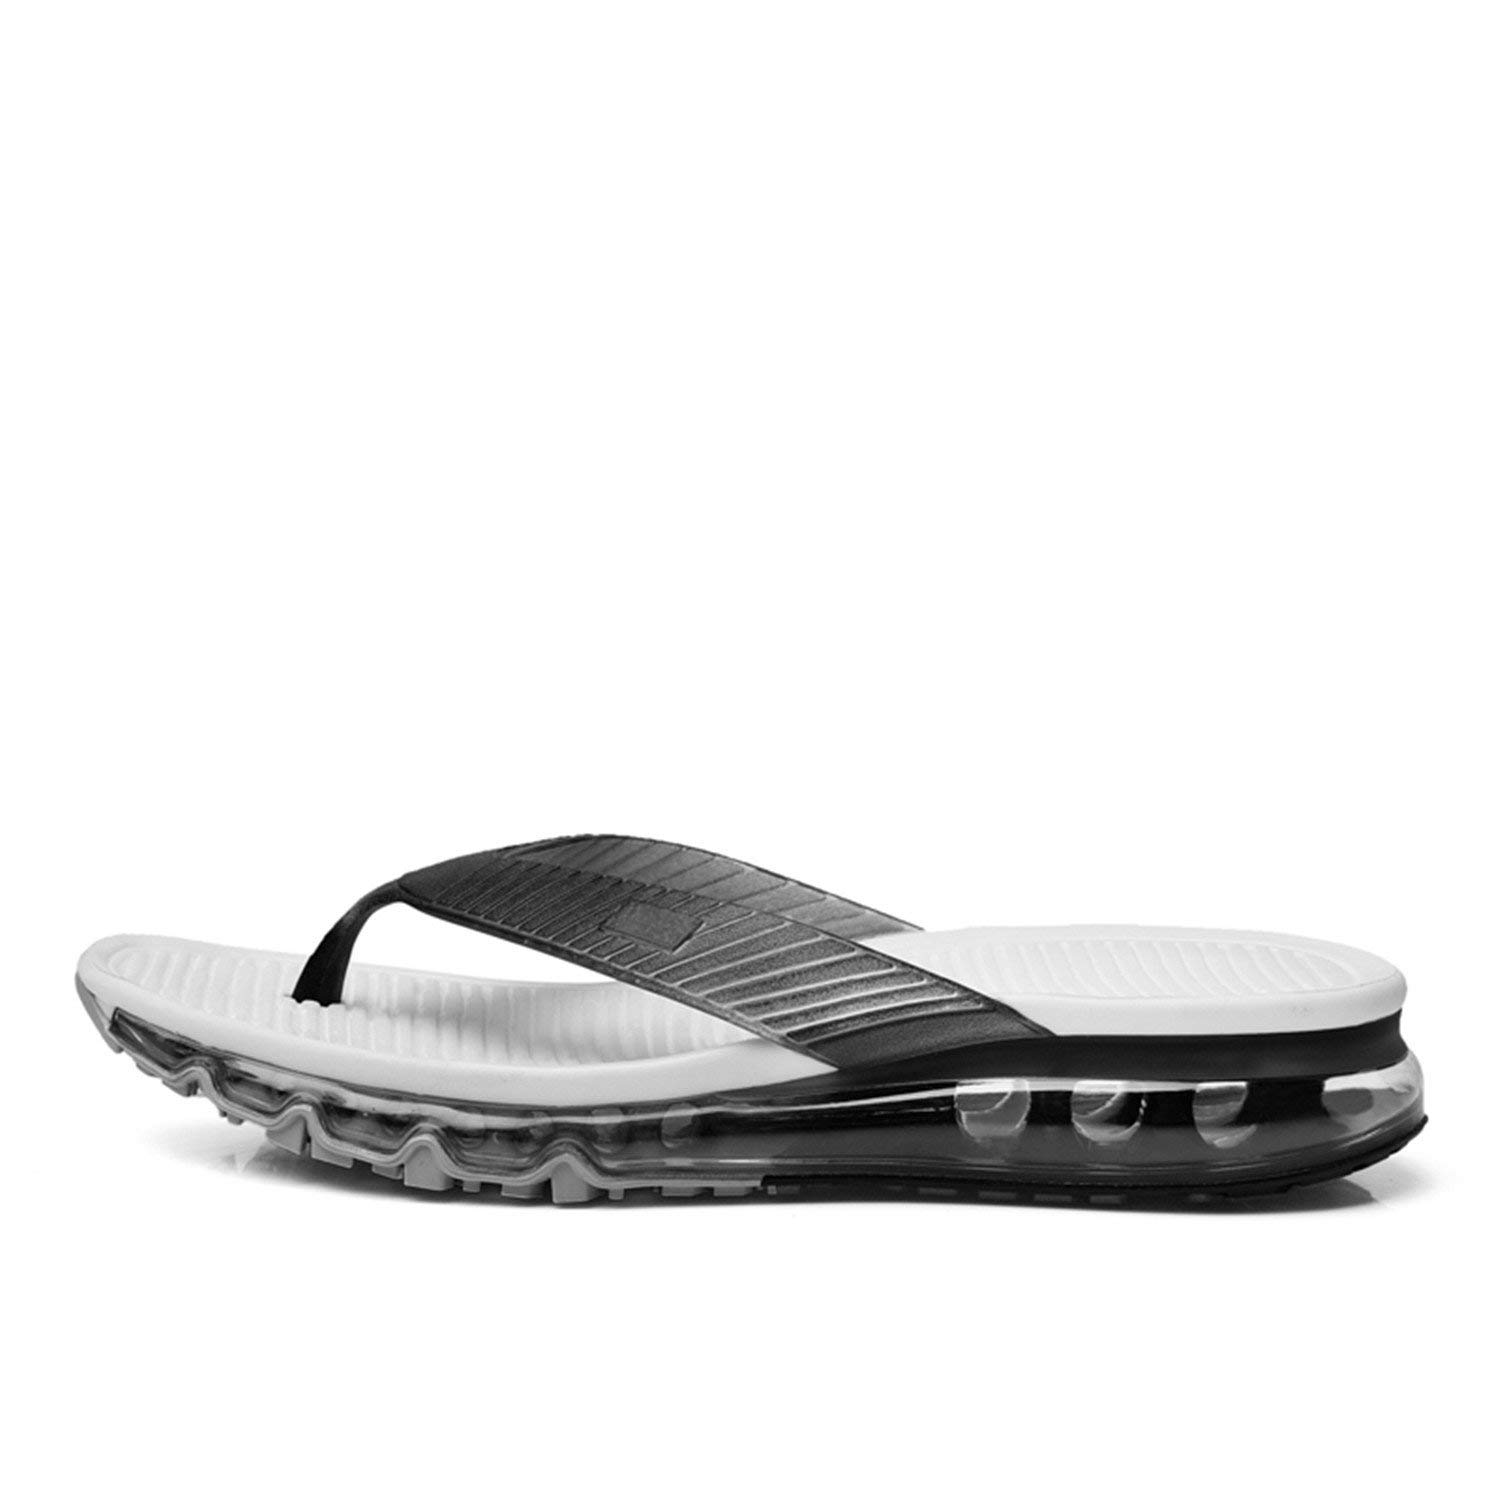 Marvin Cook Full Air Cushion Flip Flops Men Outdoor Home Slippers Summer Shoes Blue/Black/Silver